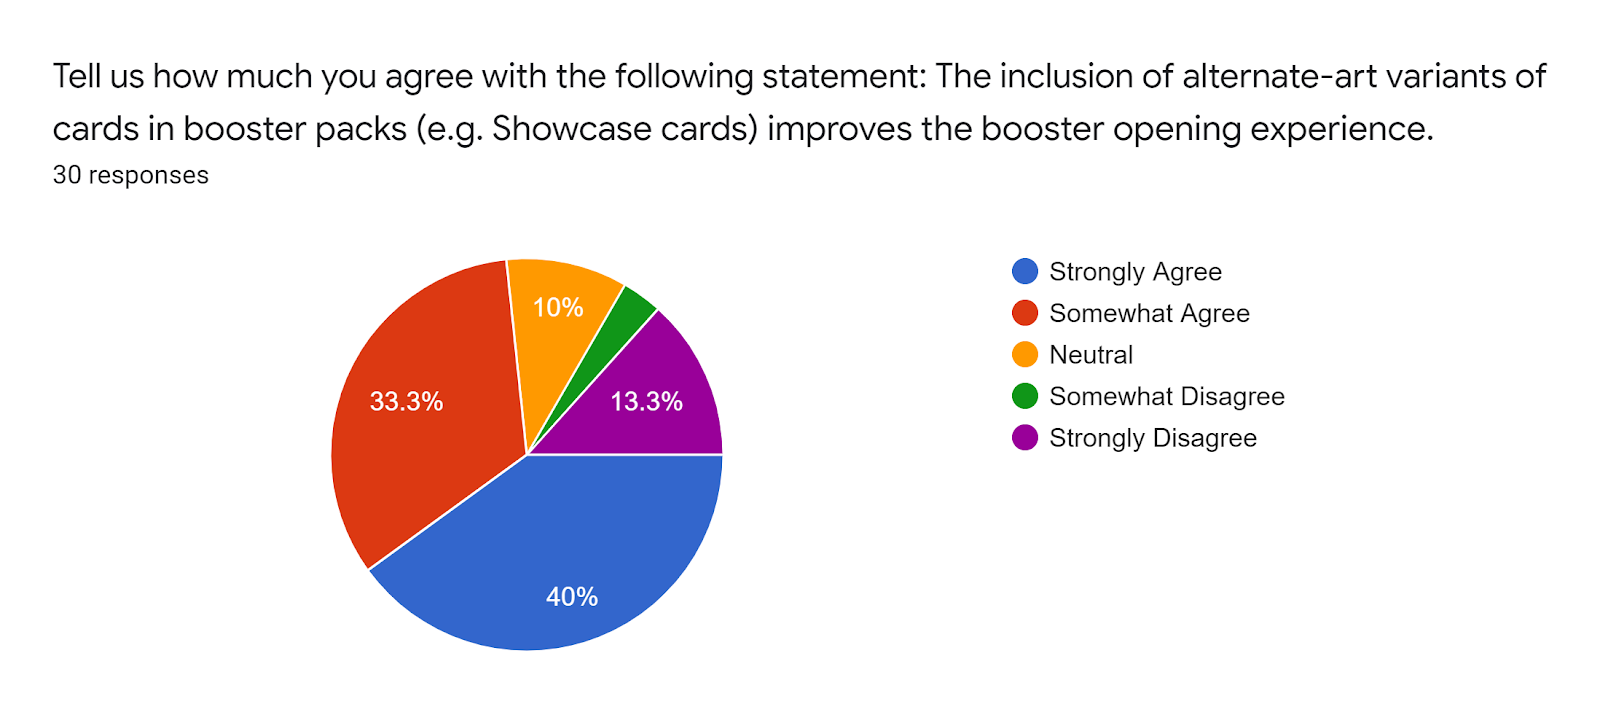 Forms response chart Question title Tell us how much you agree with the following statement The inclusion of alternate-art variants of cards in booster packs eg Showcase cards improves the booster opening experience Number of responses 30 responses